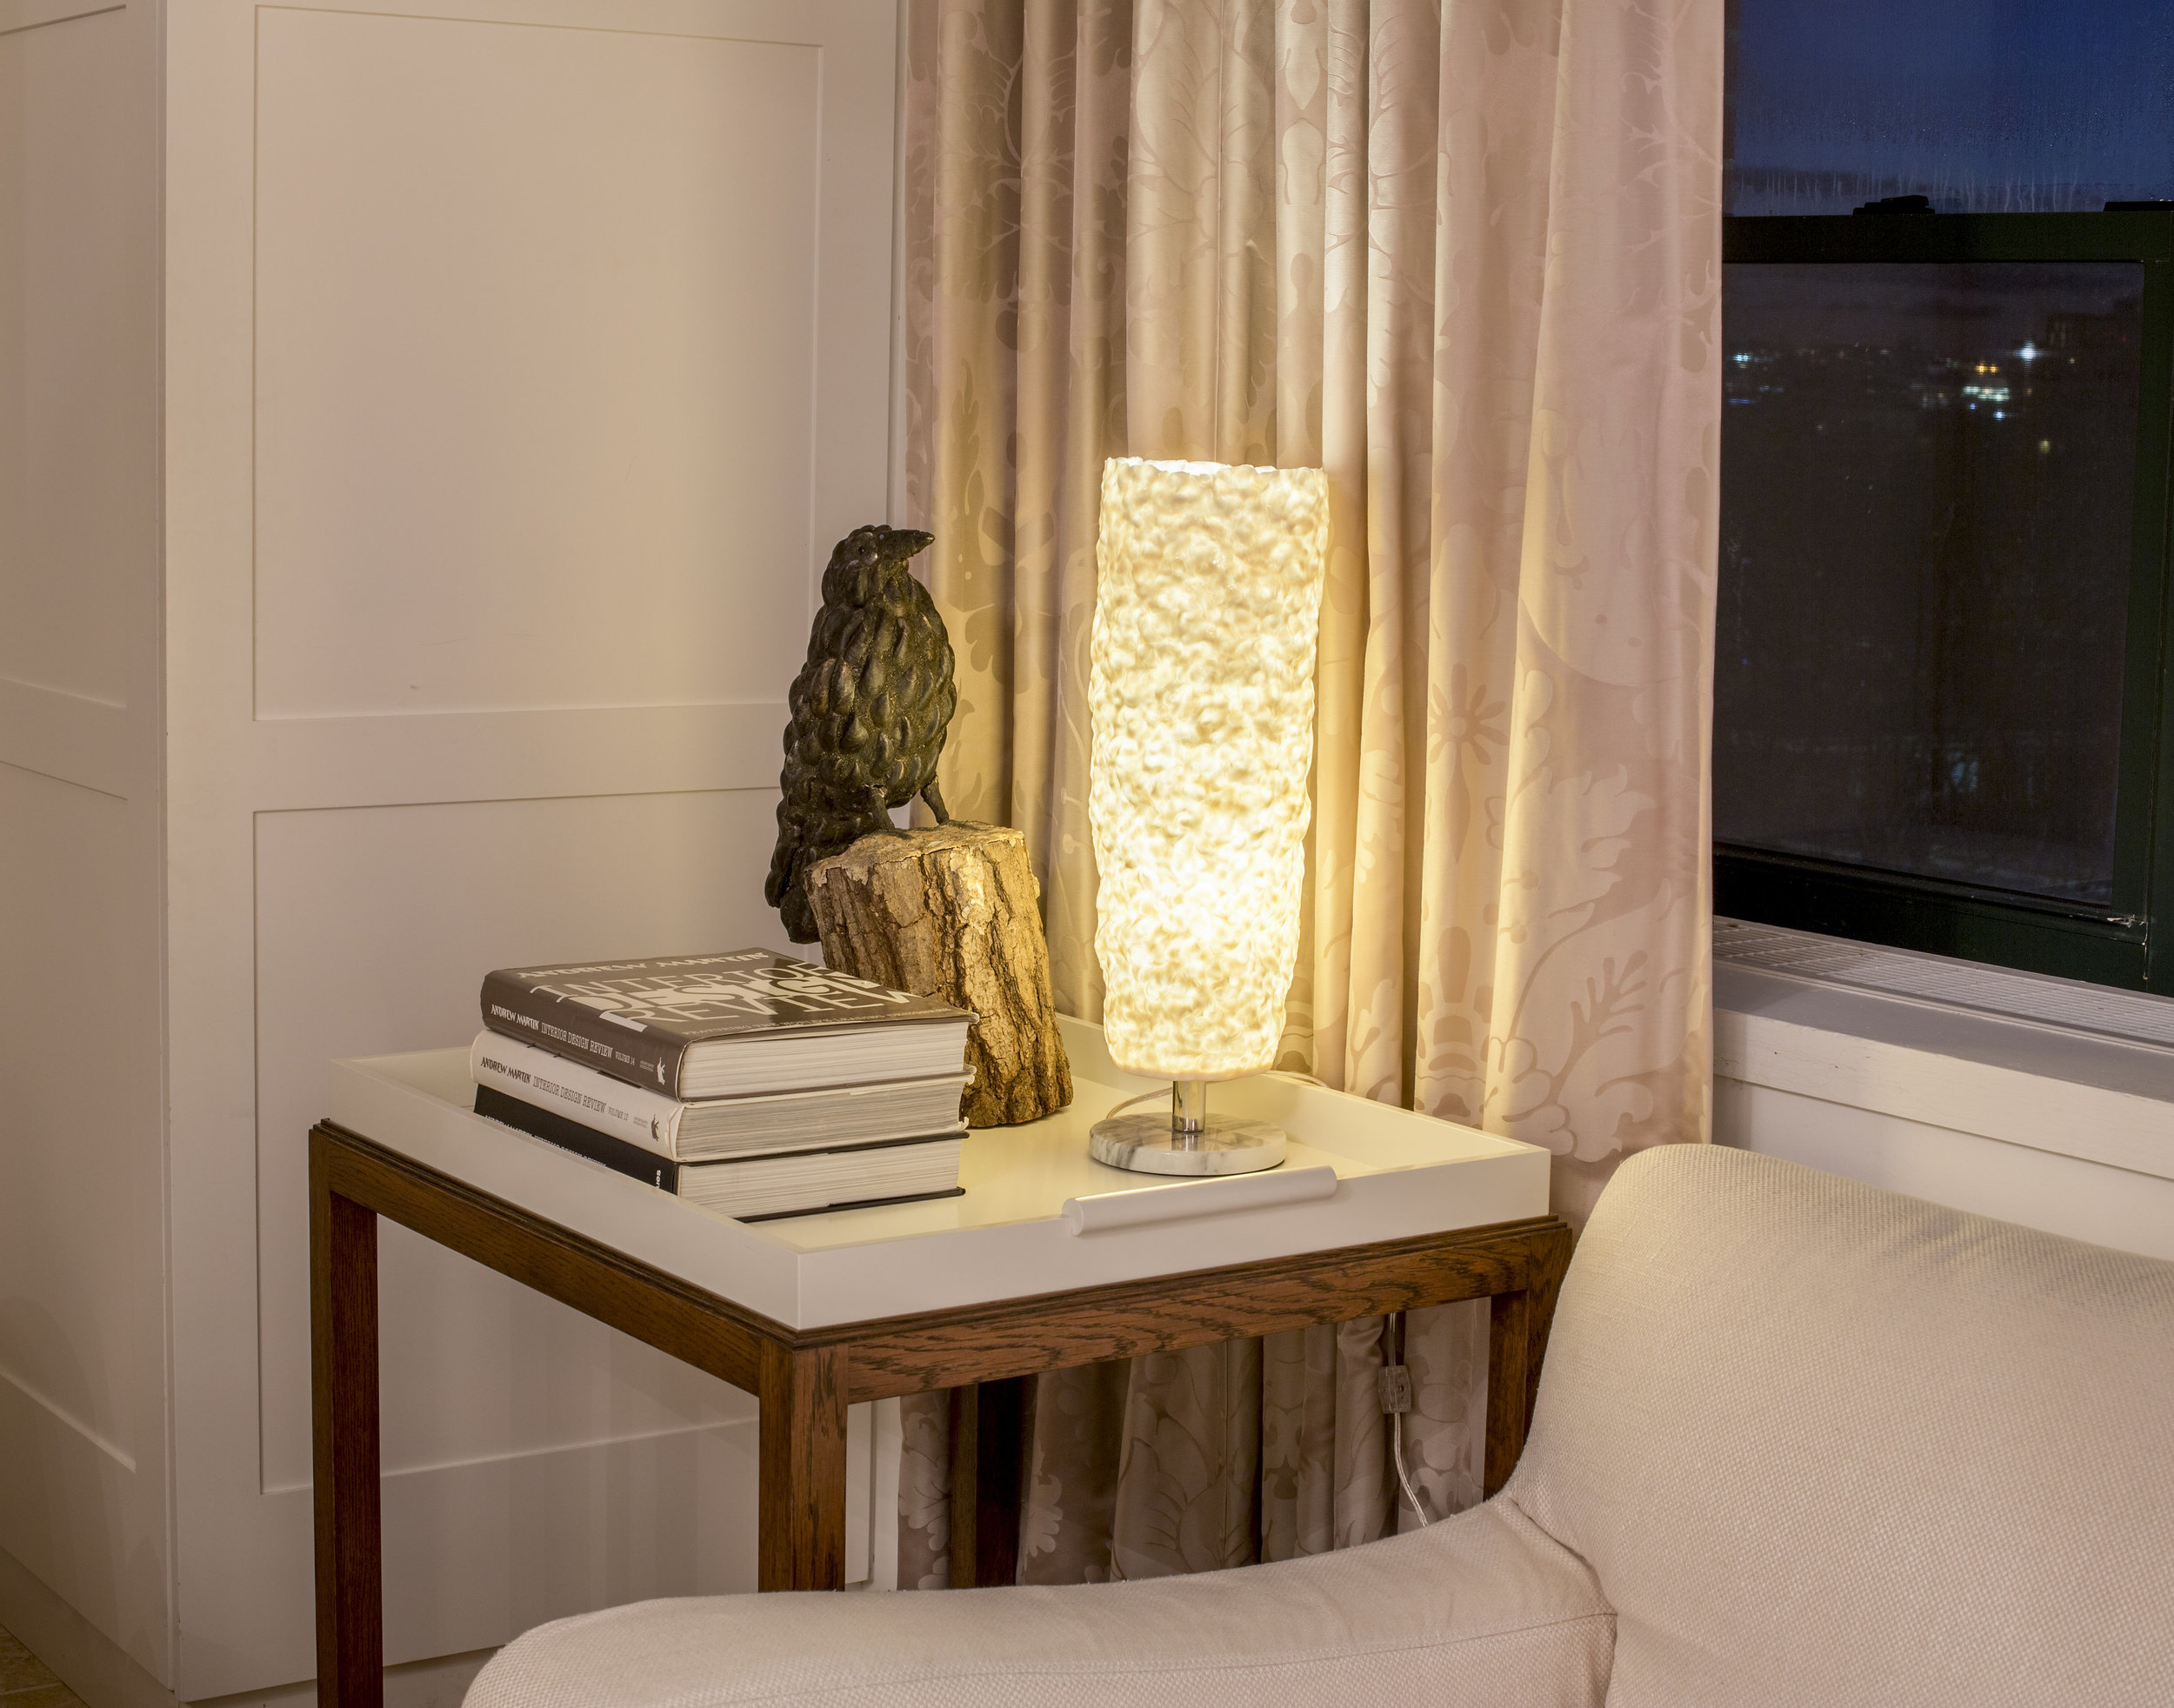 Sofa Table Lamp.jpg